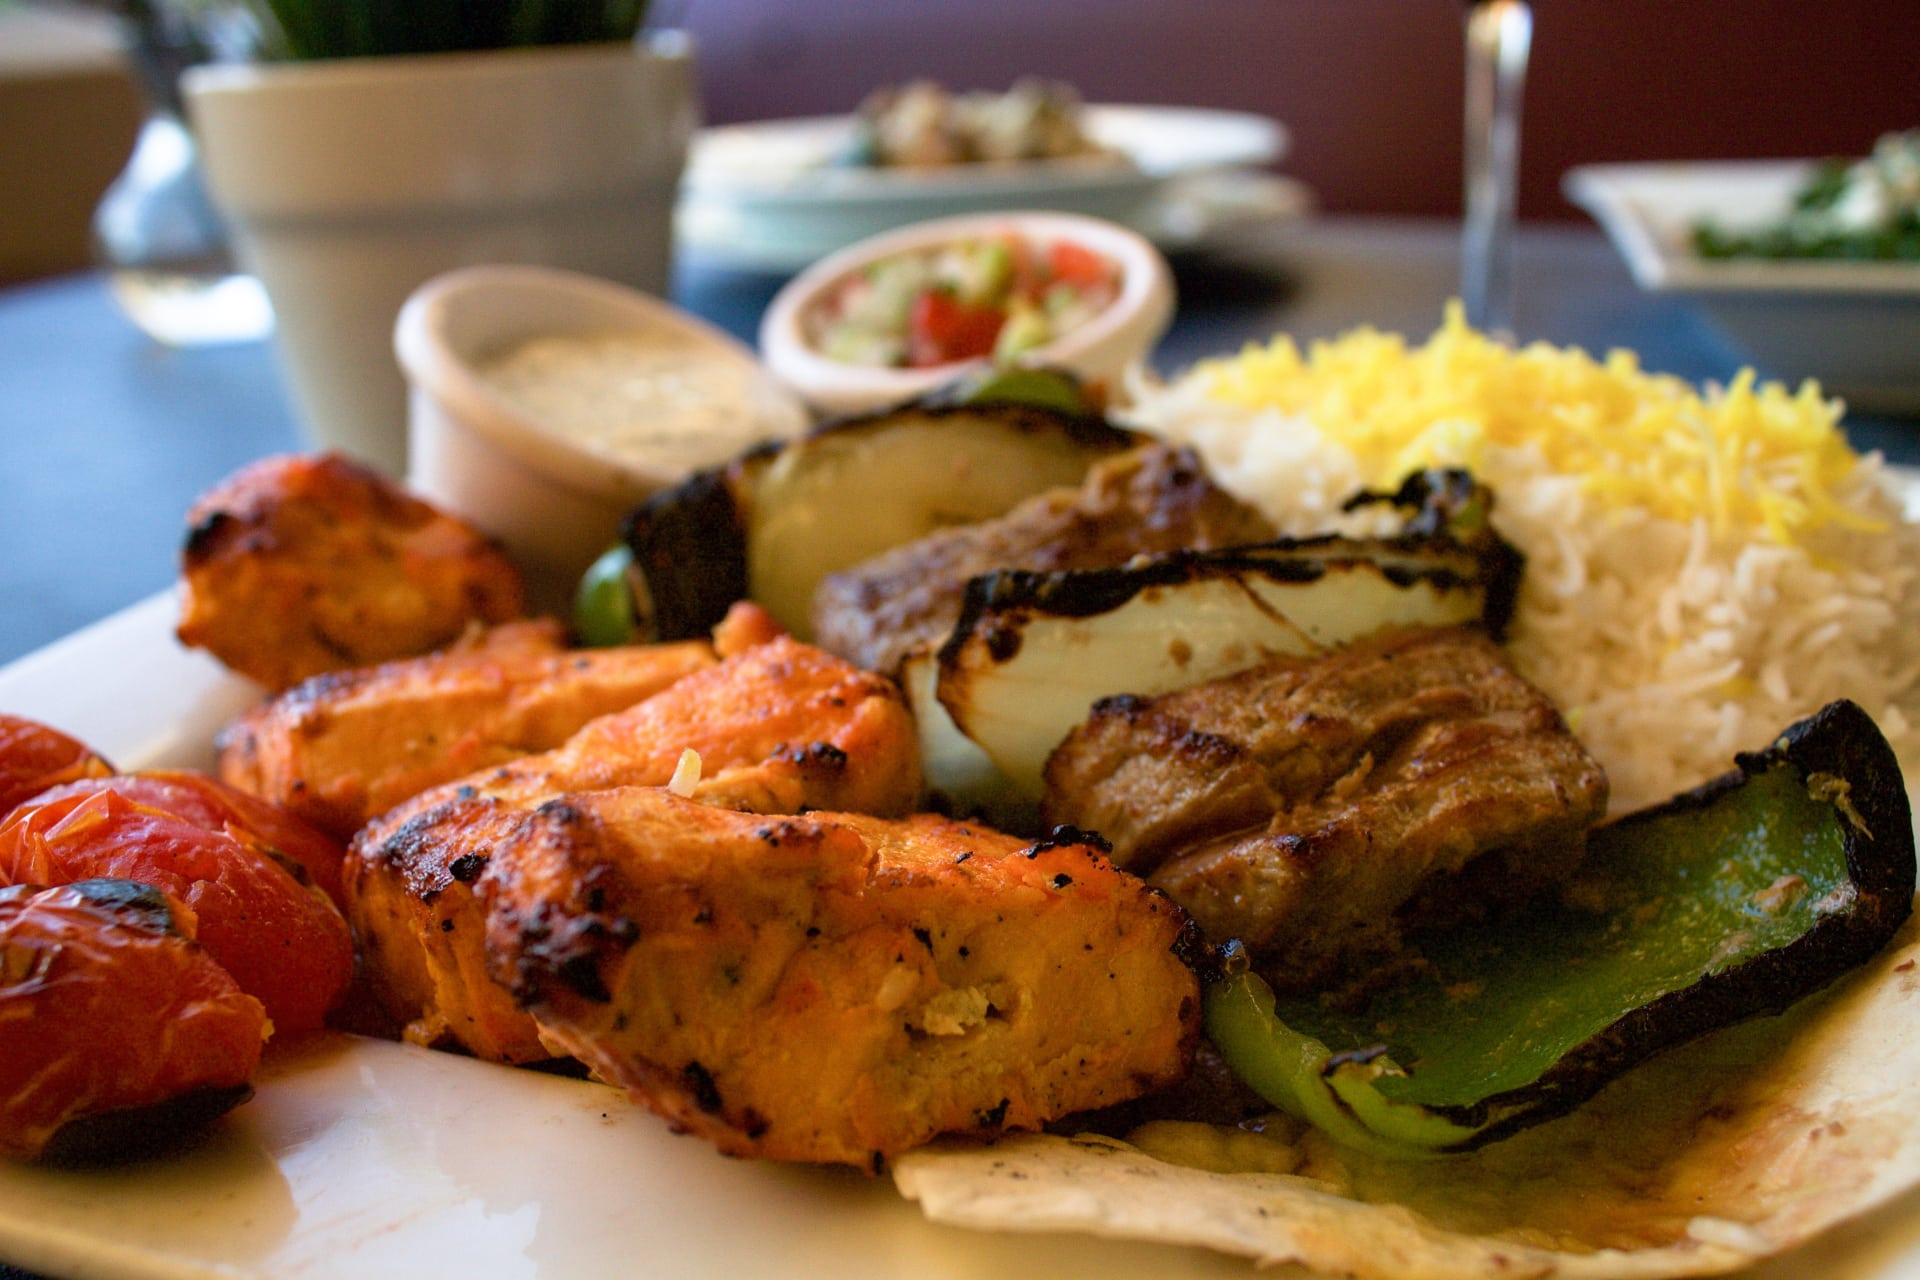 1/2 Filet Shish + 1/2 Chicken Breast